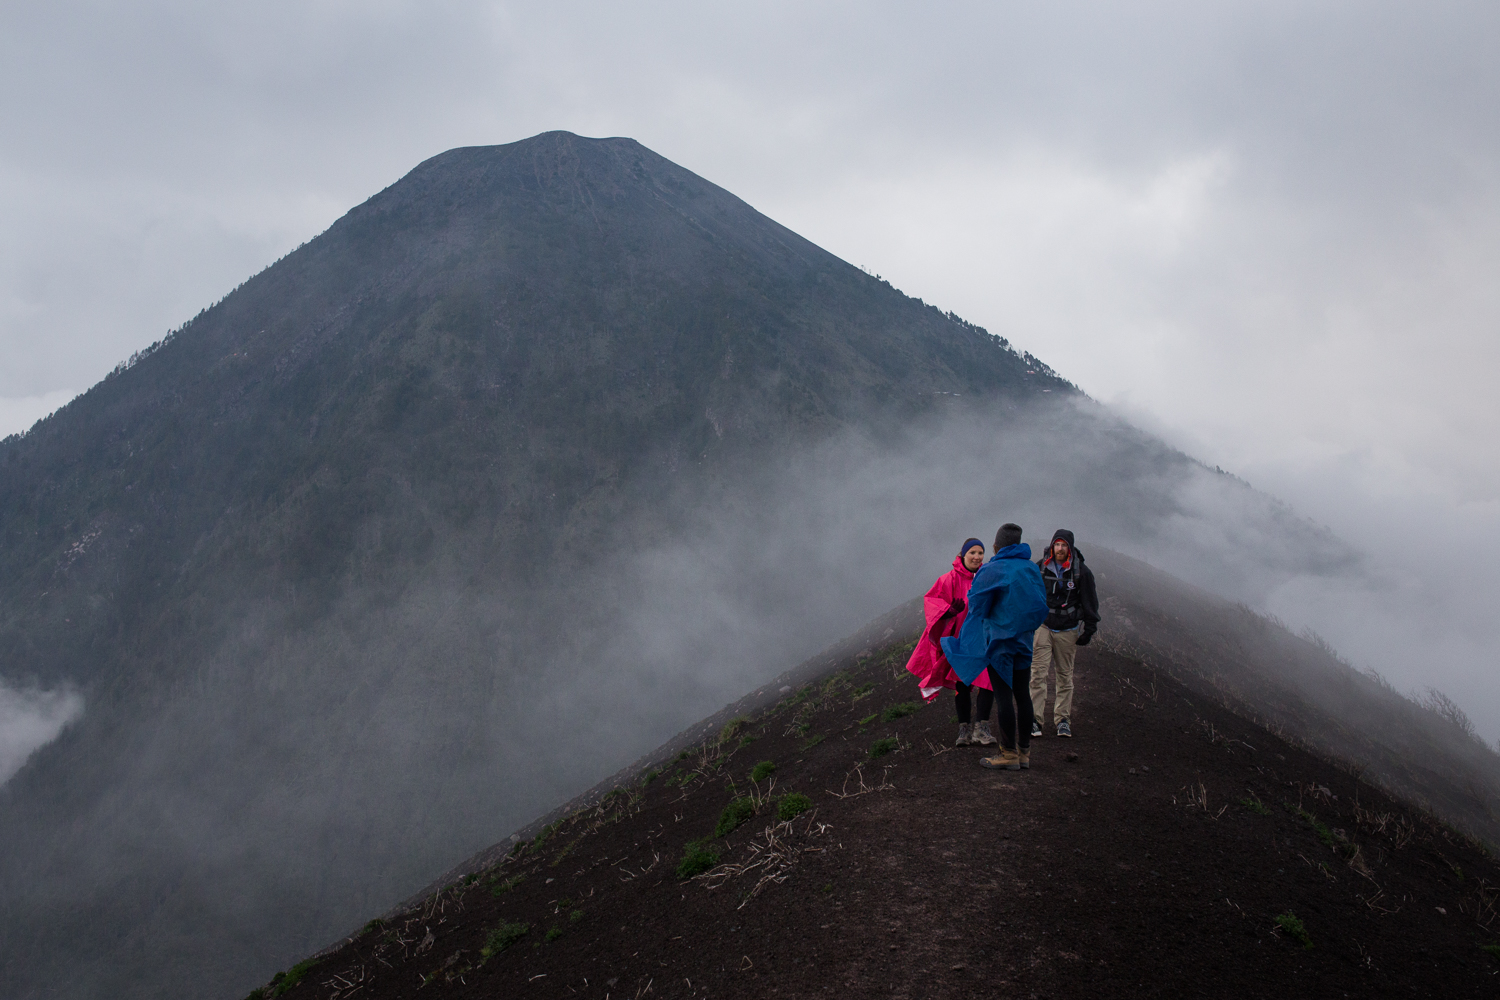 View looking back at Acatenango from the ridge of Fuego. Base camp tarps on Acatenango can be seen above the participants heads.